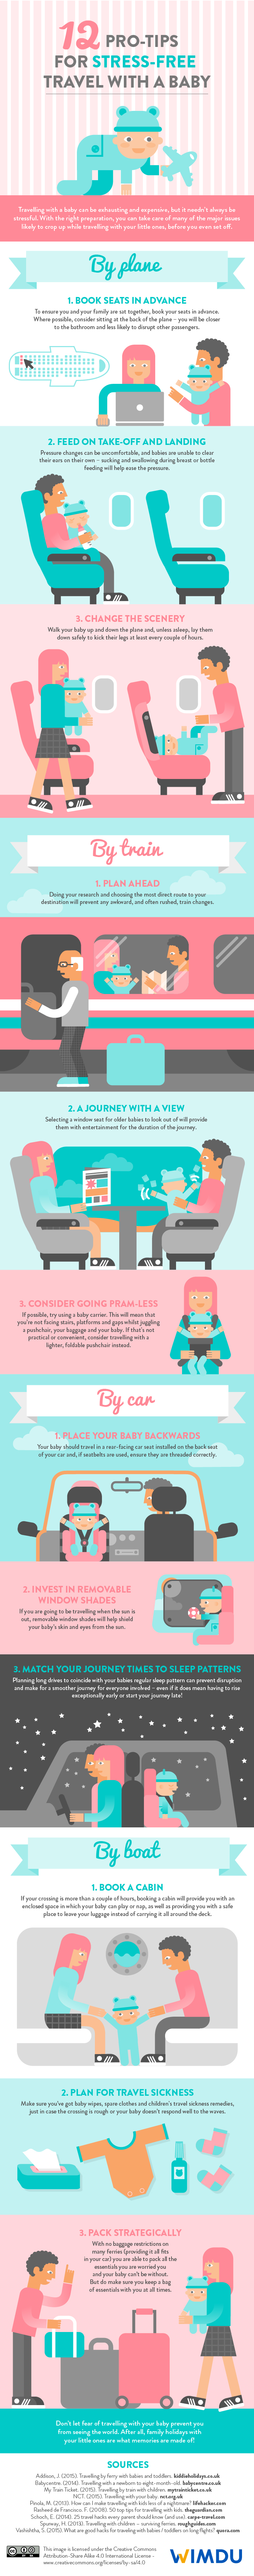 12 Tips for Stress-Free Travel with a Baby [Infographic]